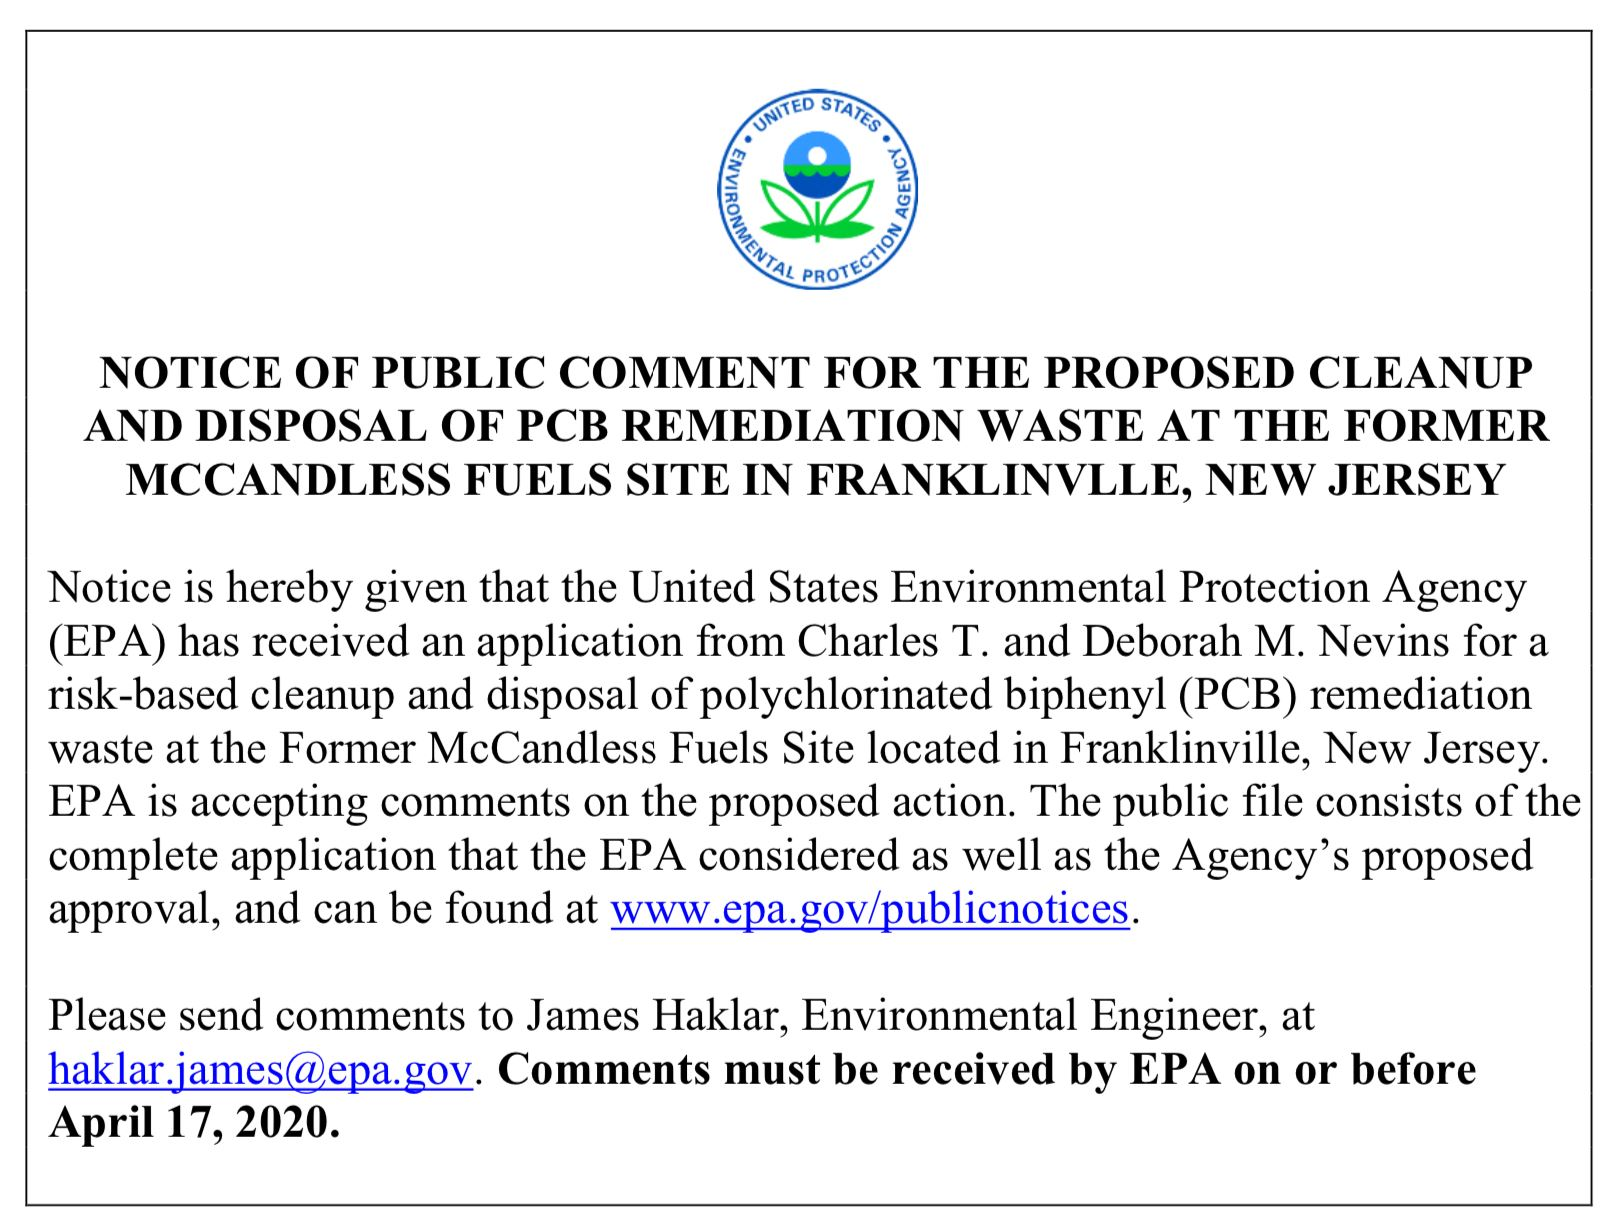 Notice of Public Comment for PCB Remediation at McCandless Site